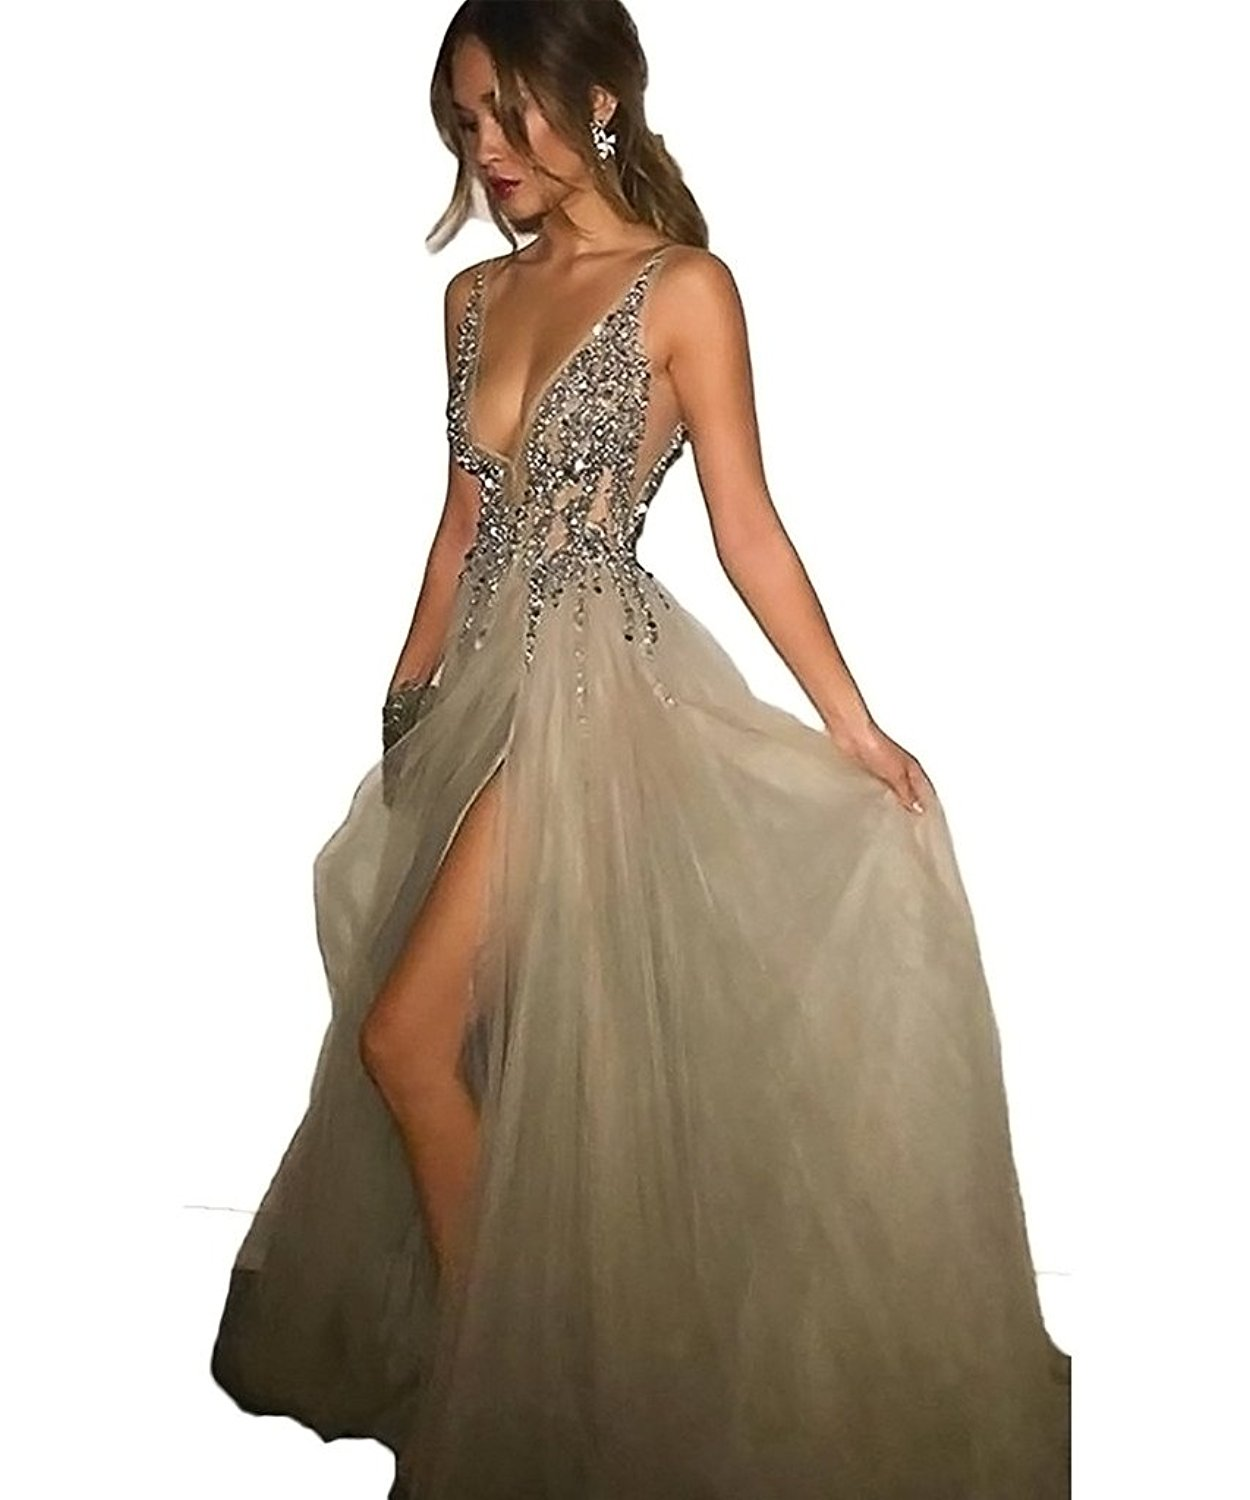 cc9dac6cb8e698 Amazon.com: 2017 Sexy Gray Prom Dresses With Deep V Neck Sequins Tulle and  Lace Sex High Split Long ...